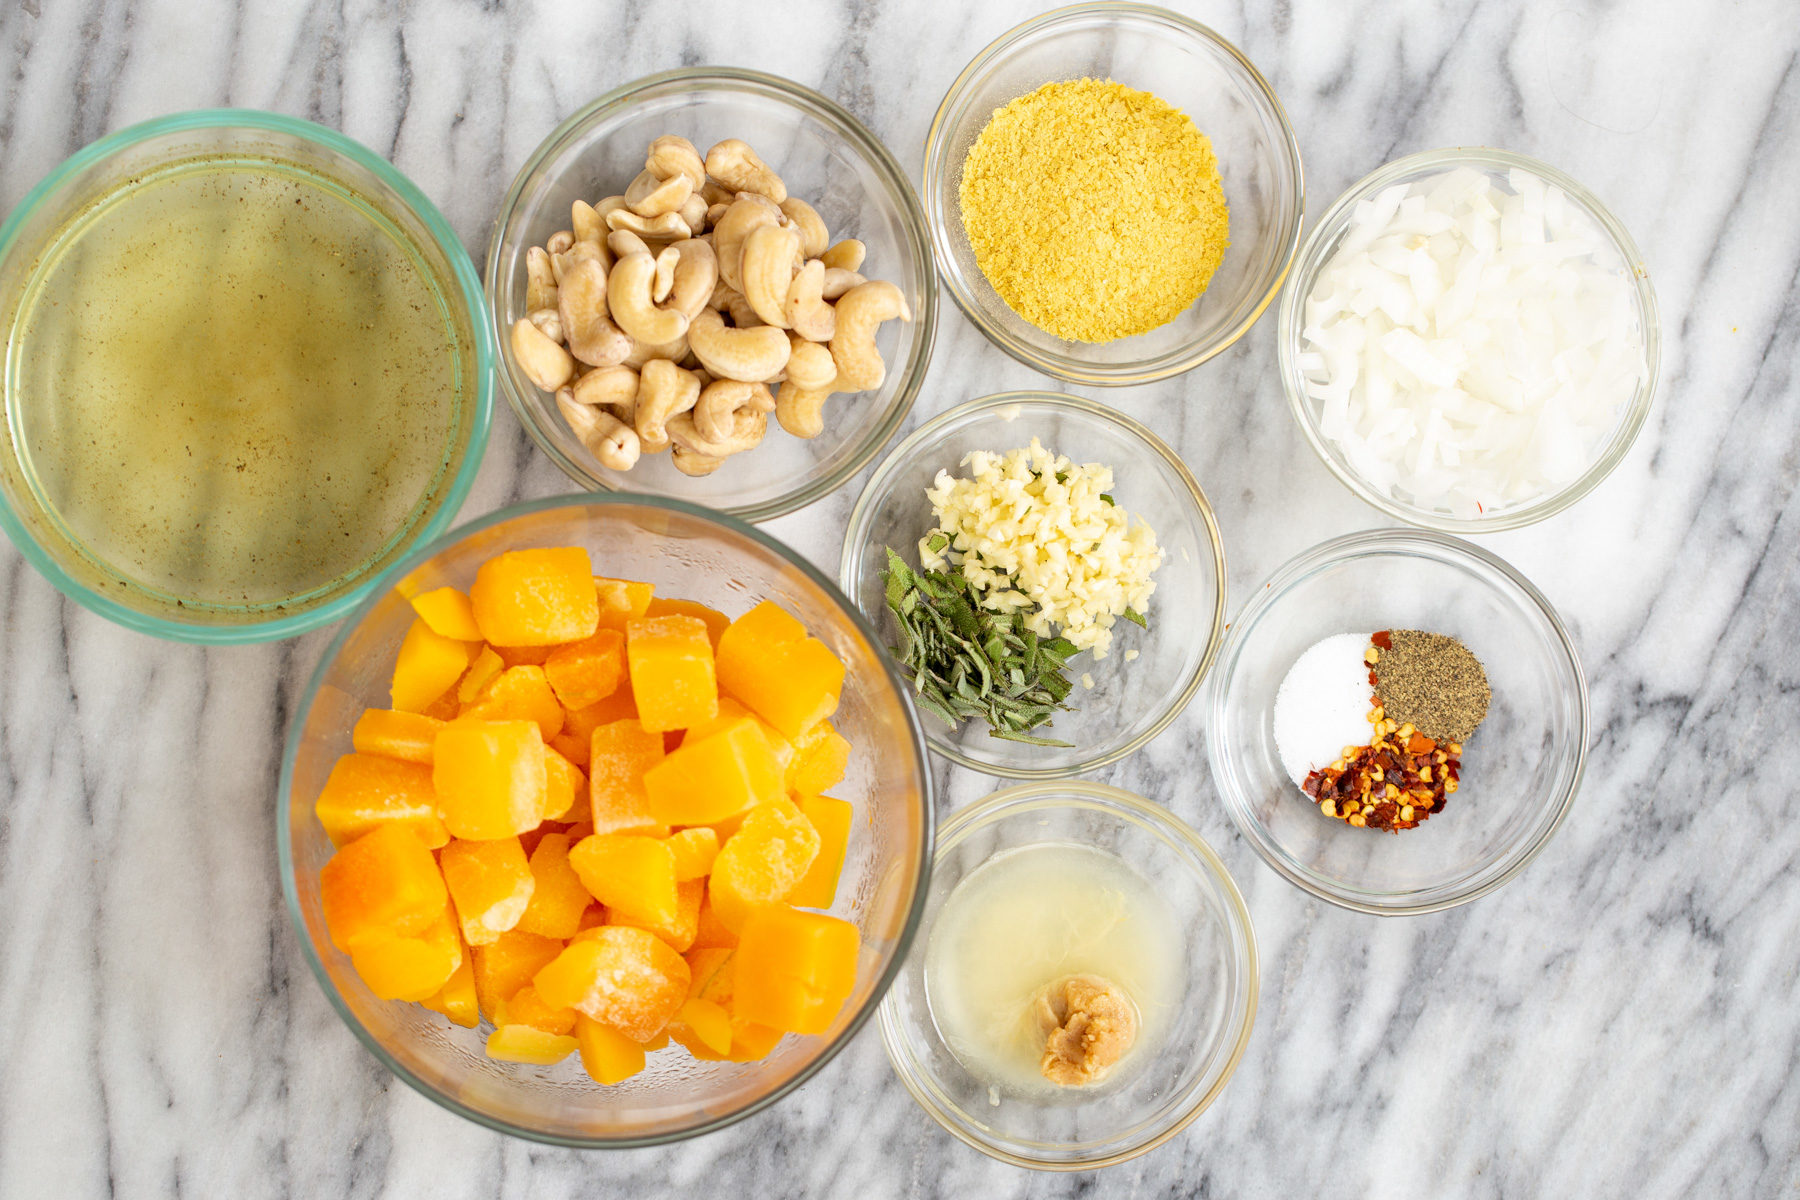 overhead shot of ingredients needed for making vegan butternut squash carbonara sauce